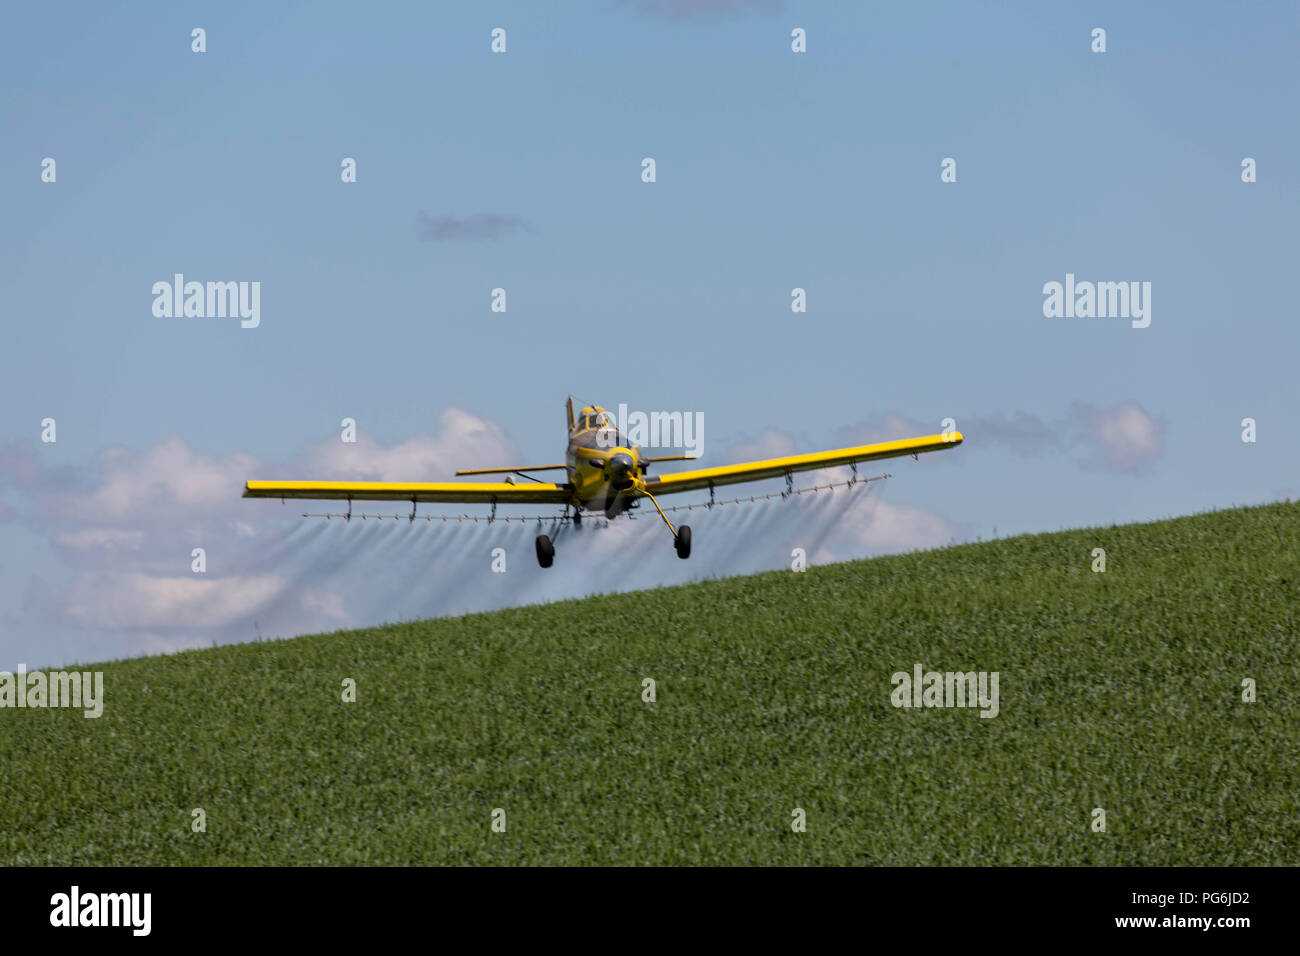 hight resolution of crop duster plane flying and spraying over crops in the palouse region of washington state